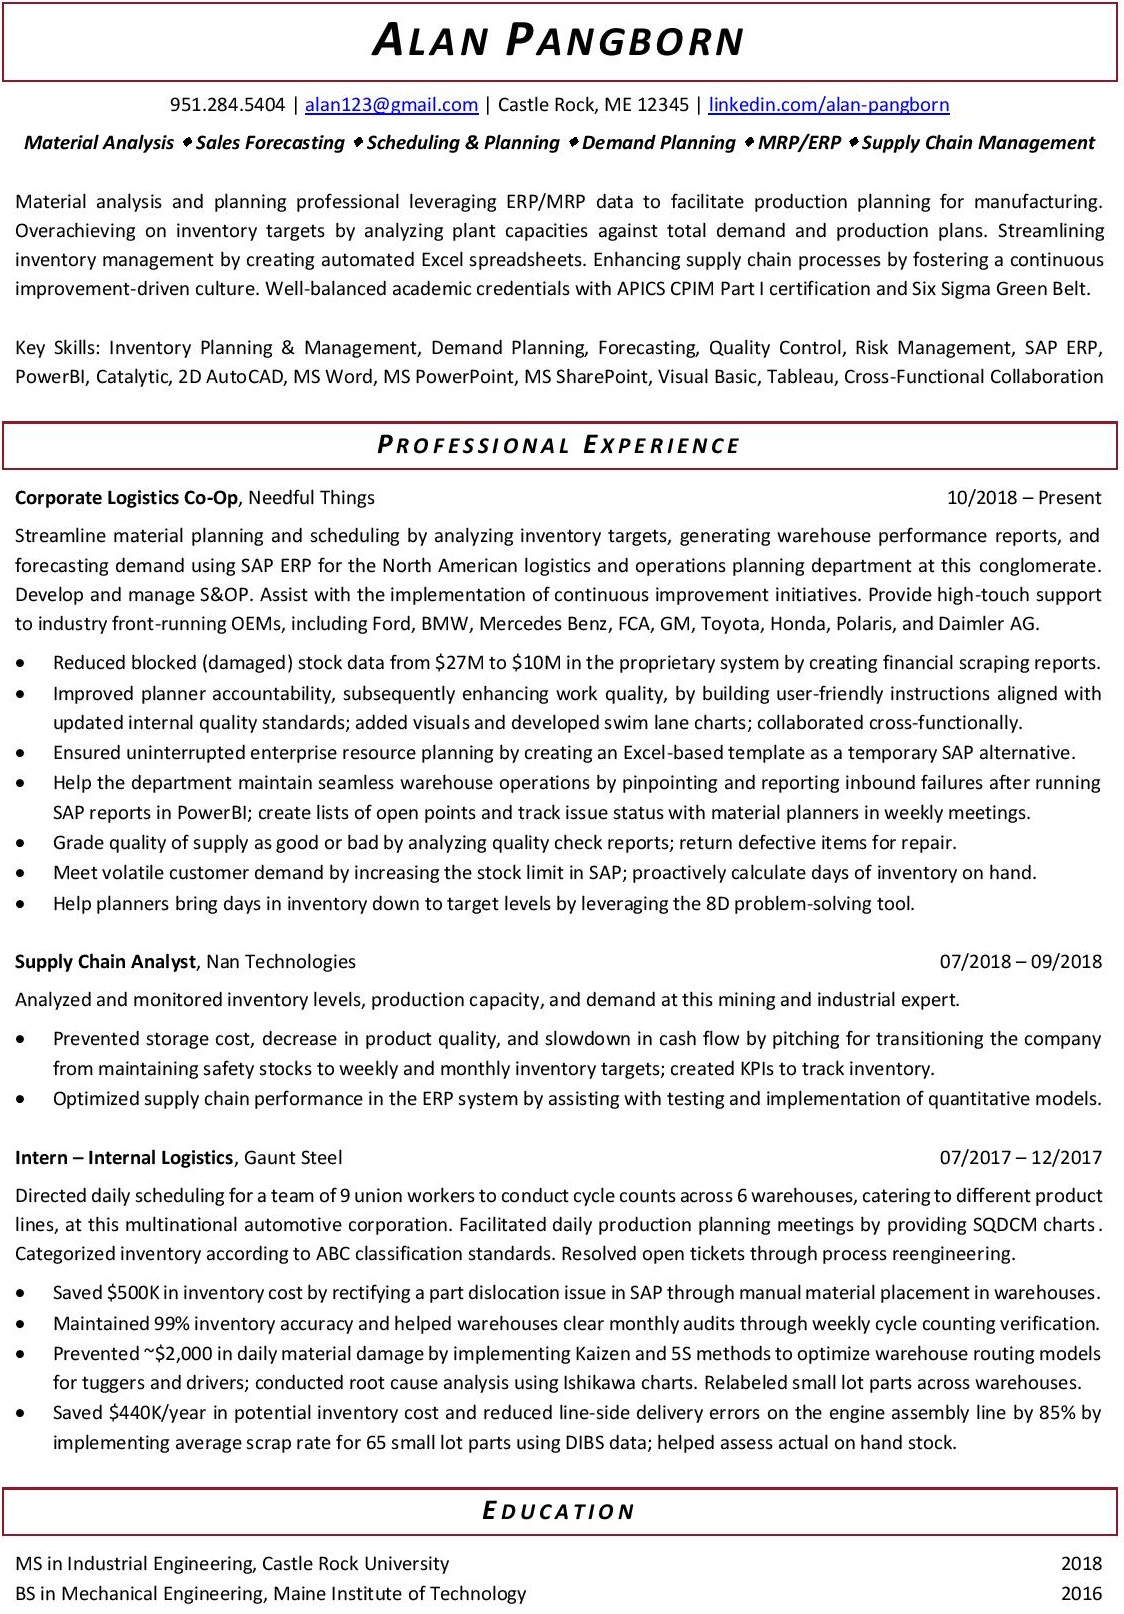 resume samples that ll get you hired careertuners production planning and control Resume Production Planning And Control Engineer Resume Samples